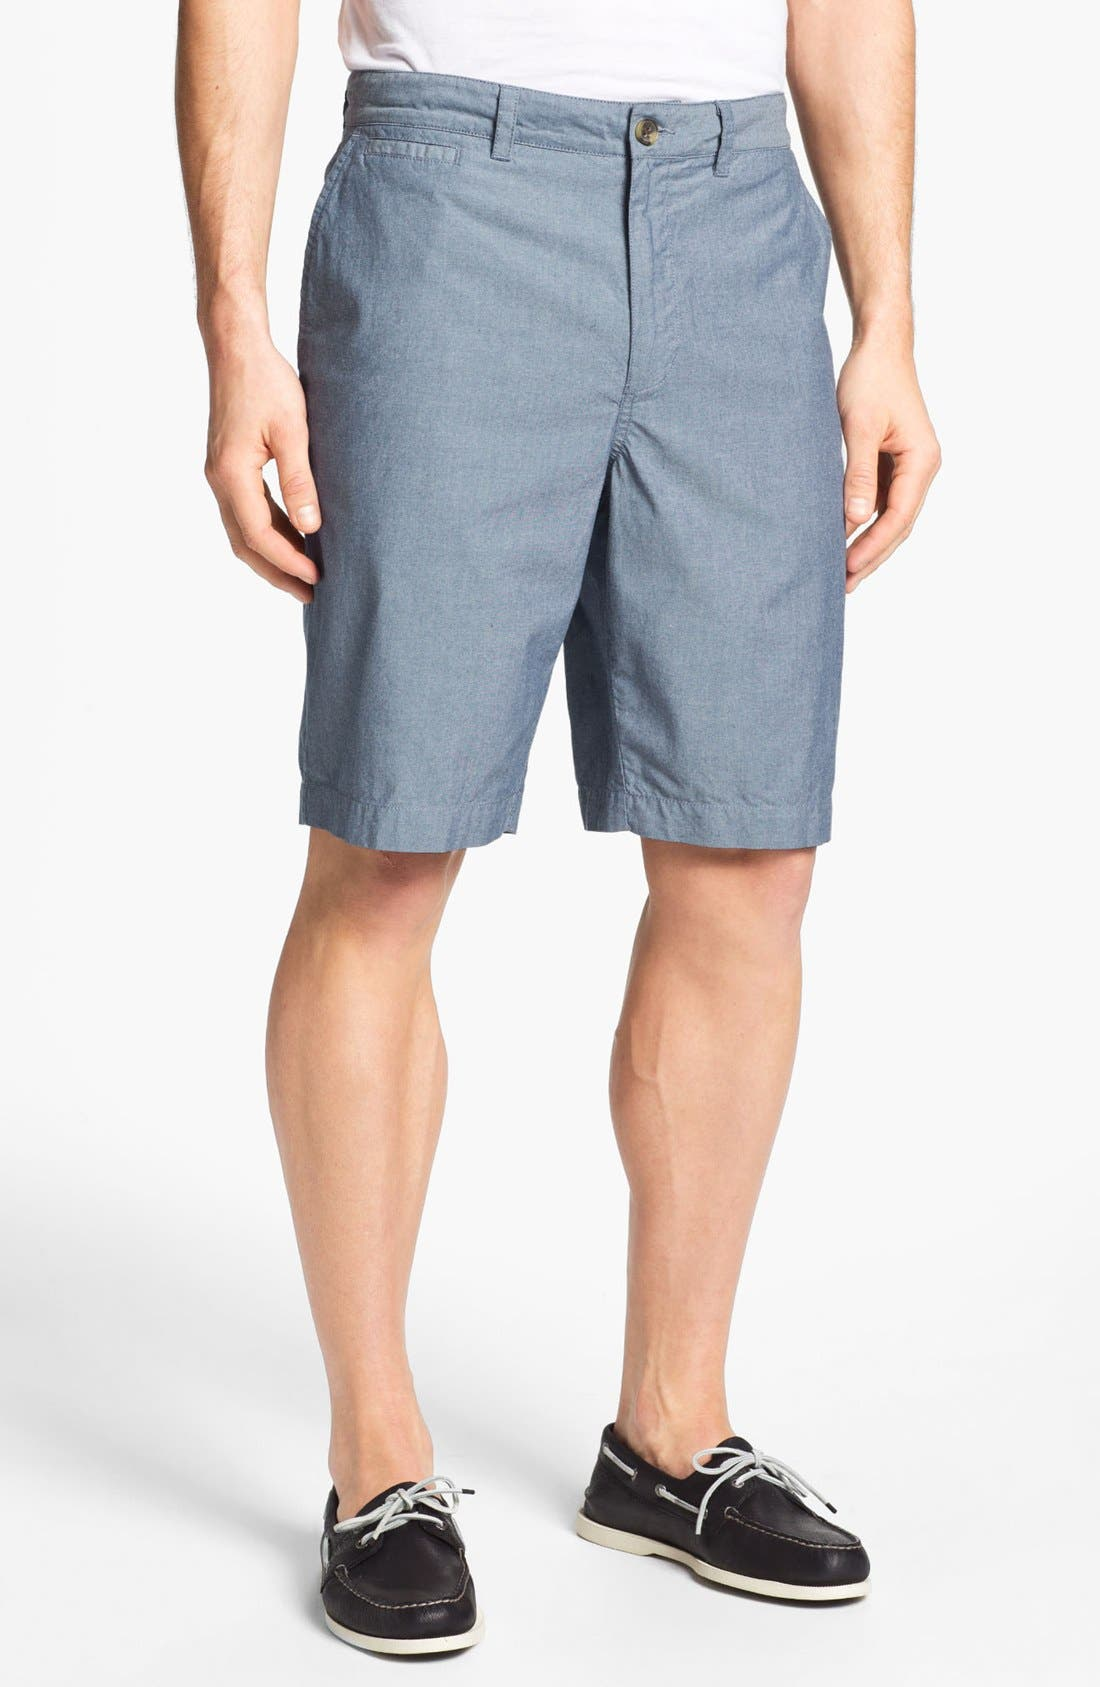 Alternate Image 1 Selected - Wallin & Bros. 'Lanspur' Chambray Shorts